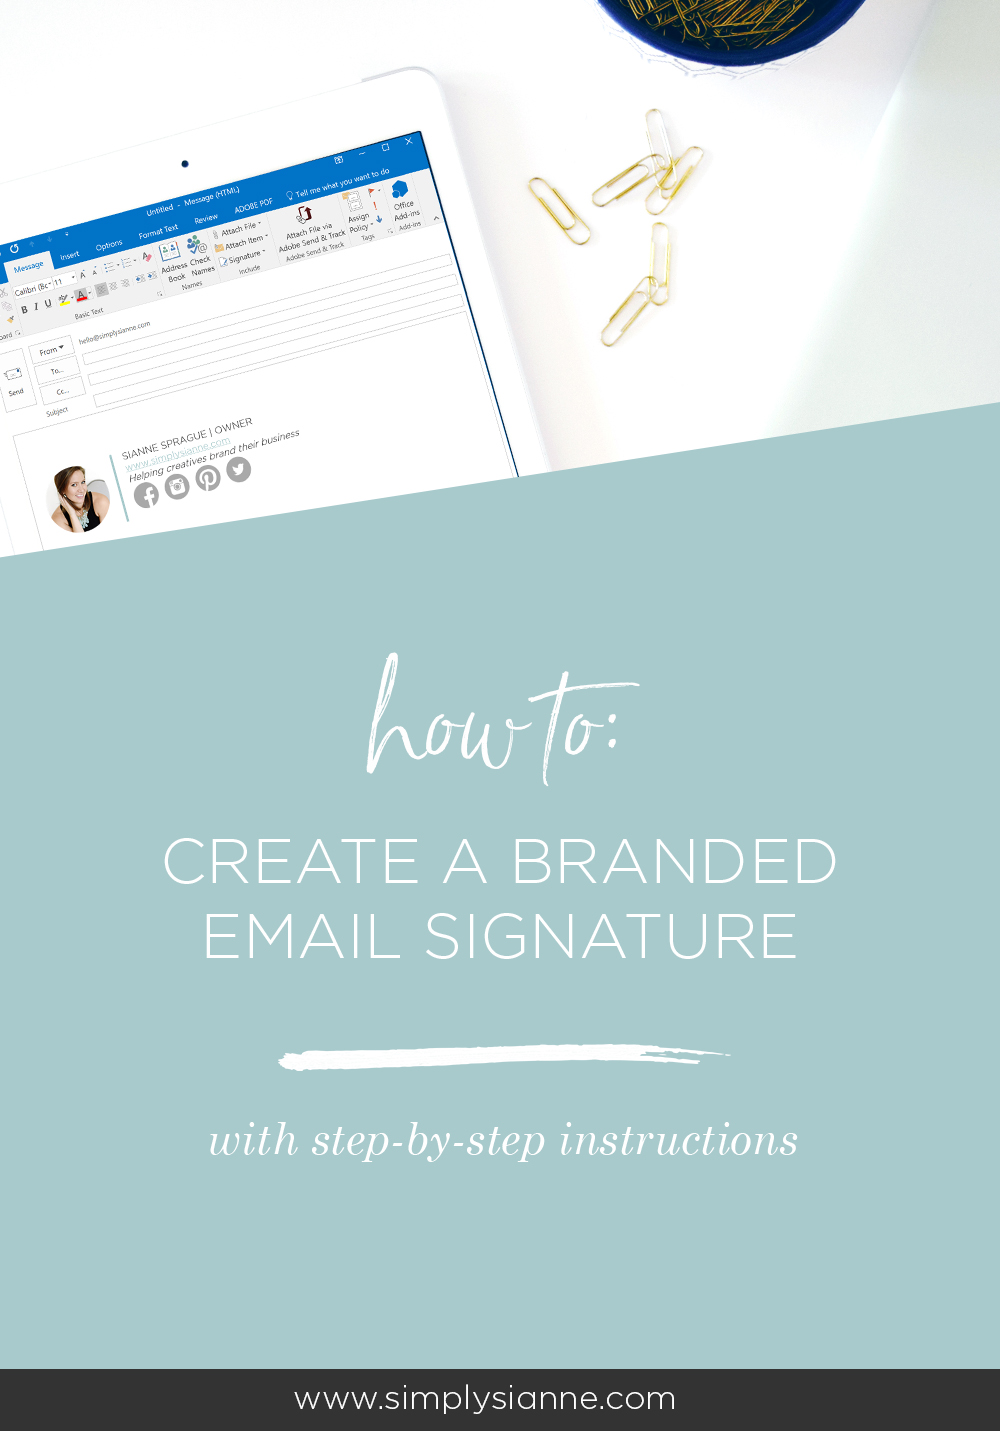 How to create a branded email signature in Outlook and Gmail